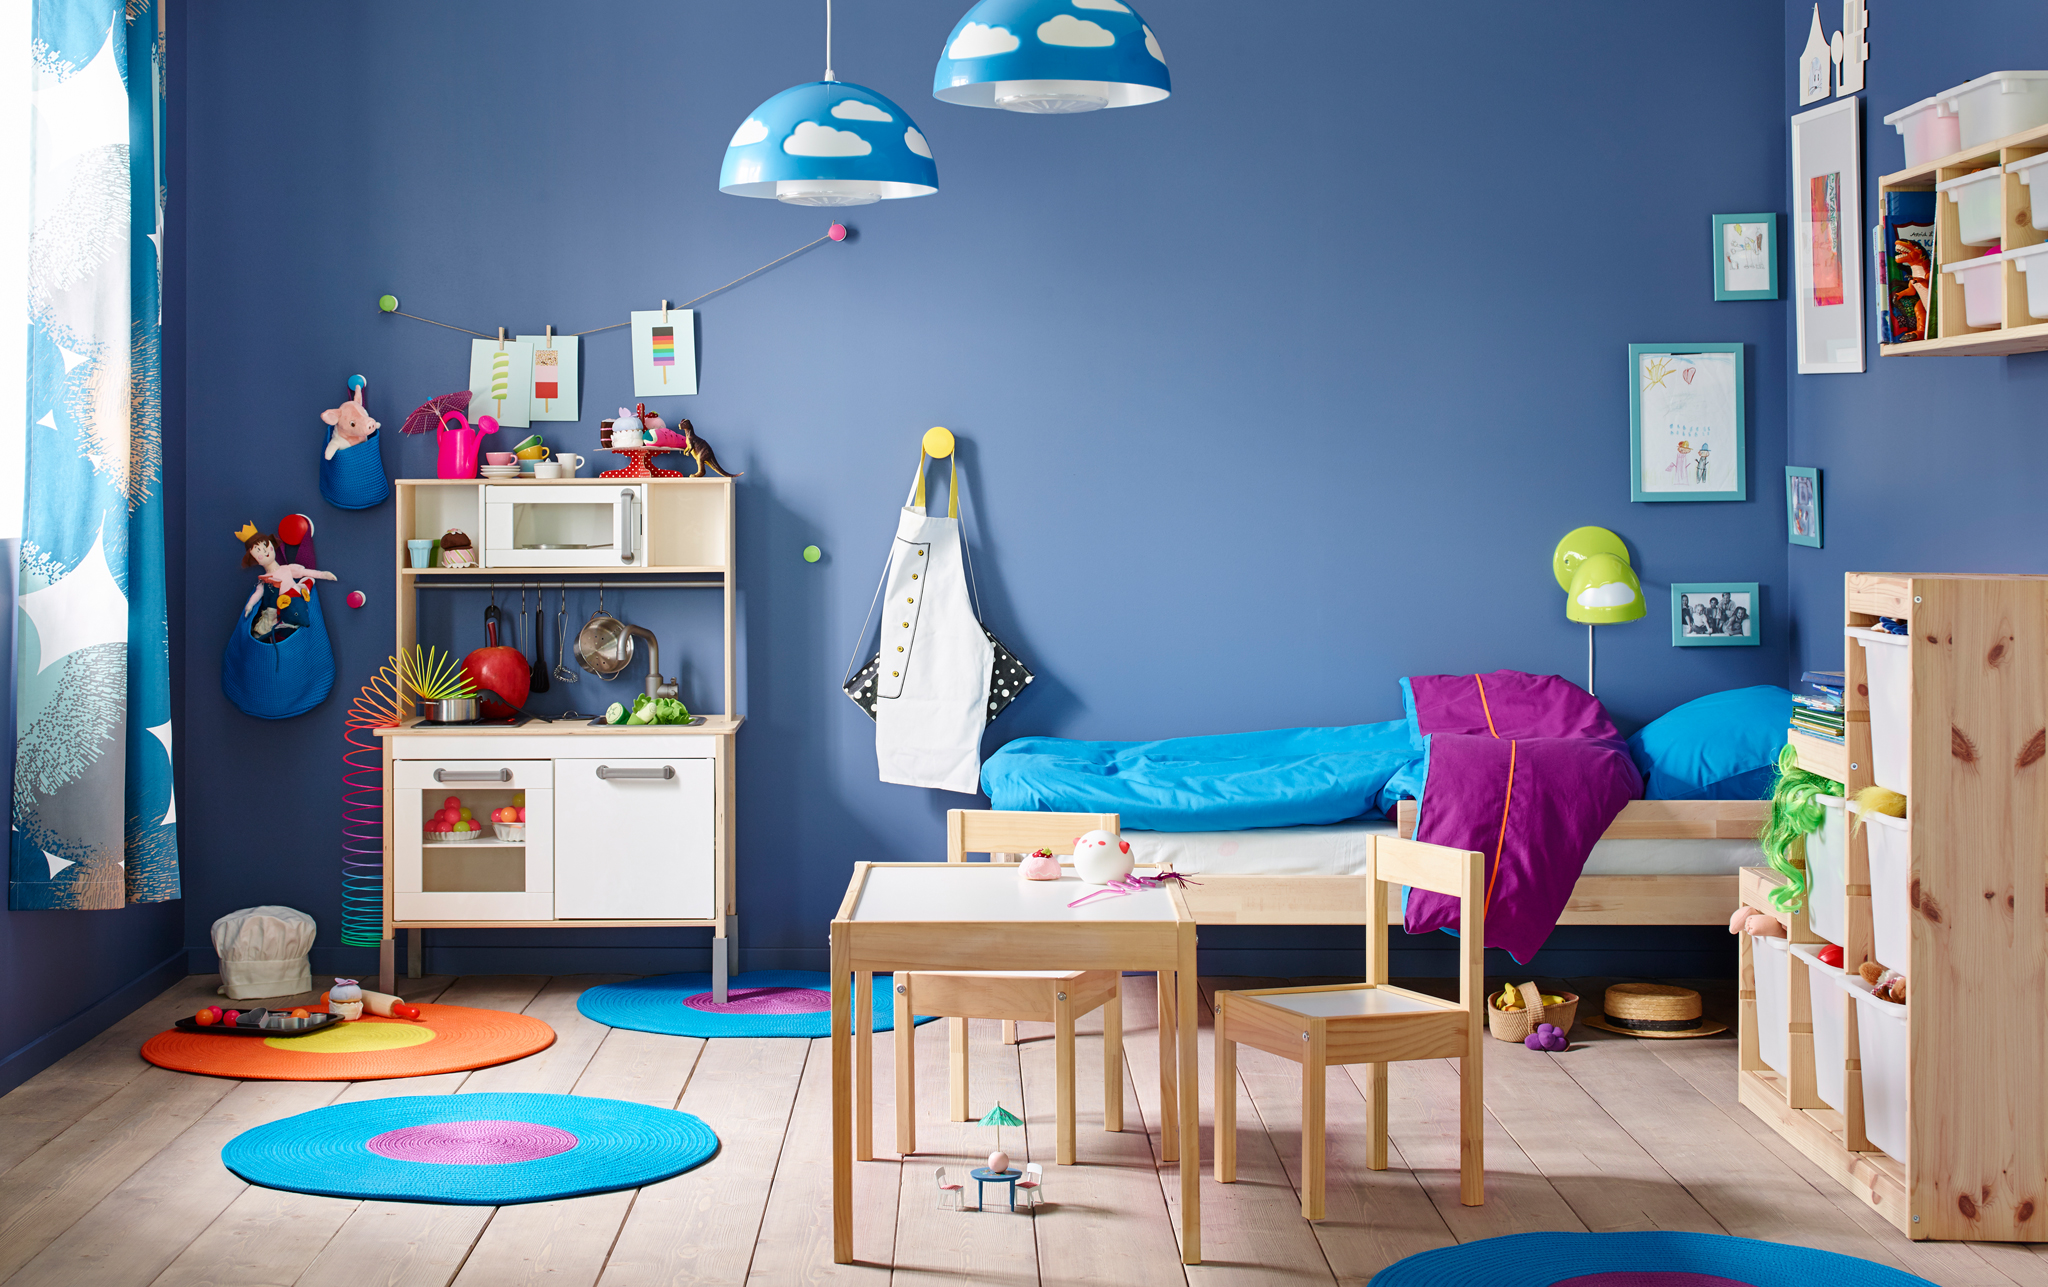 Childrens Bedroom Furniture For Small Rooms Bedroom Furniture Beech Children  Small Room Wooden Childrens Bedroom Furniture